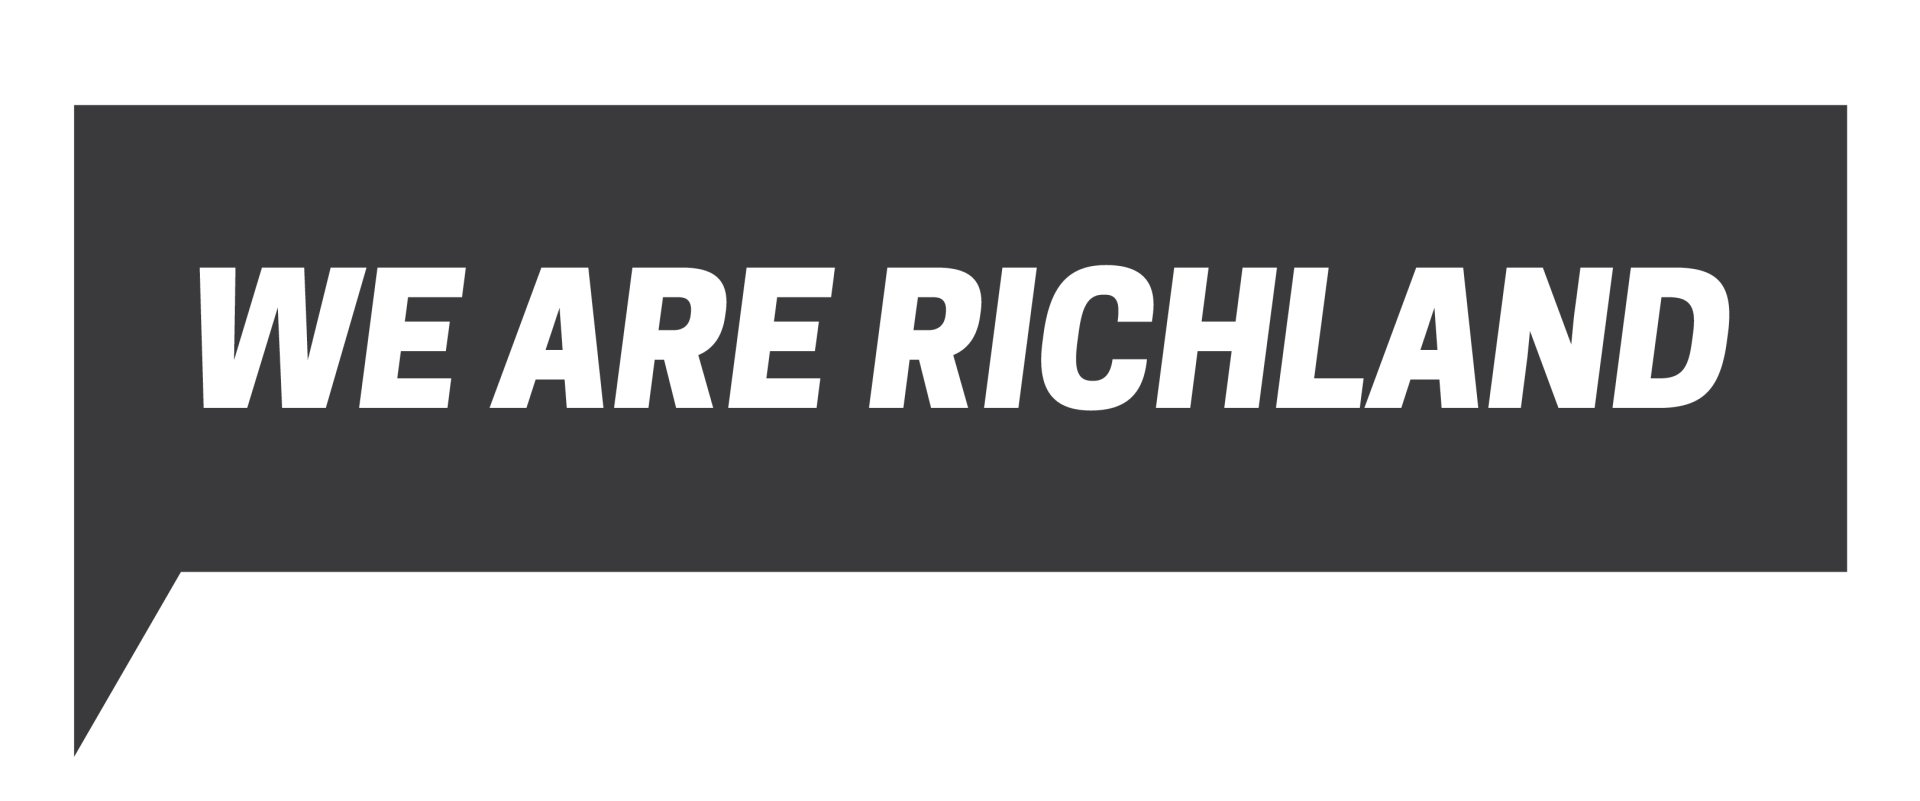 We Are richland logo